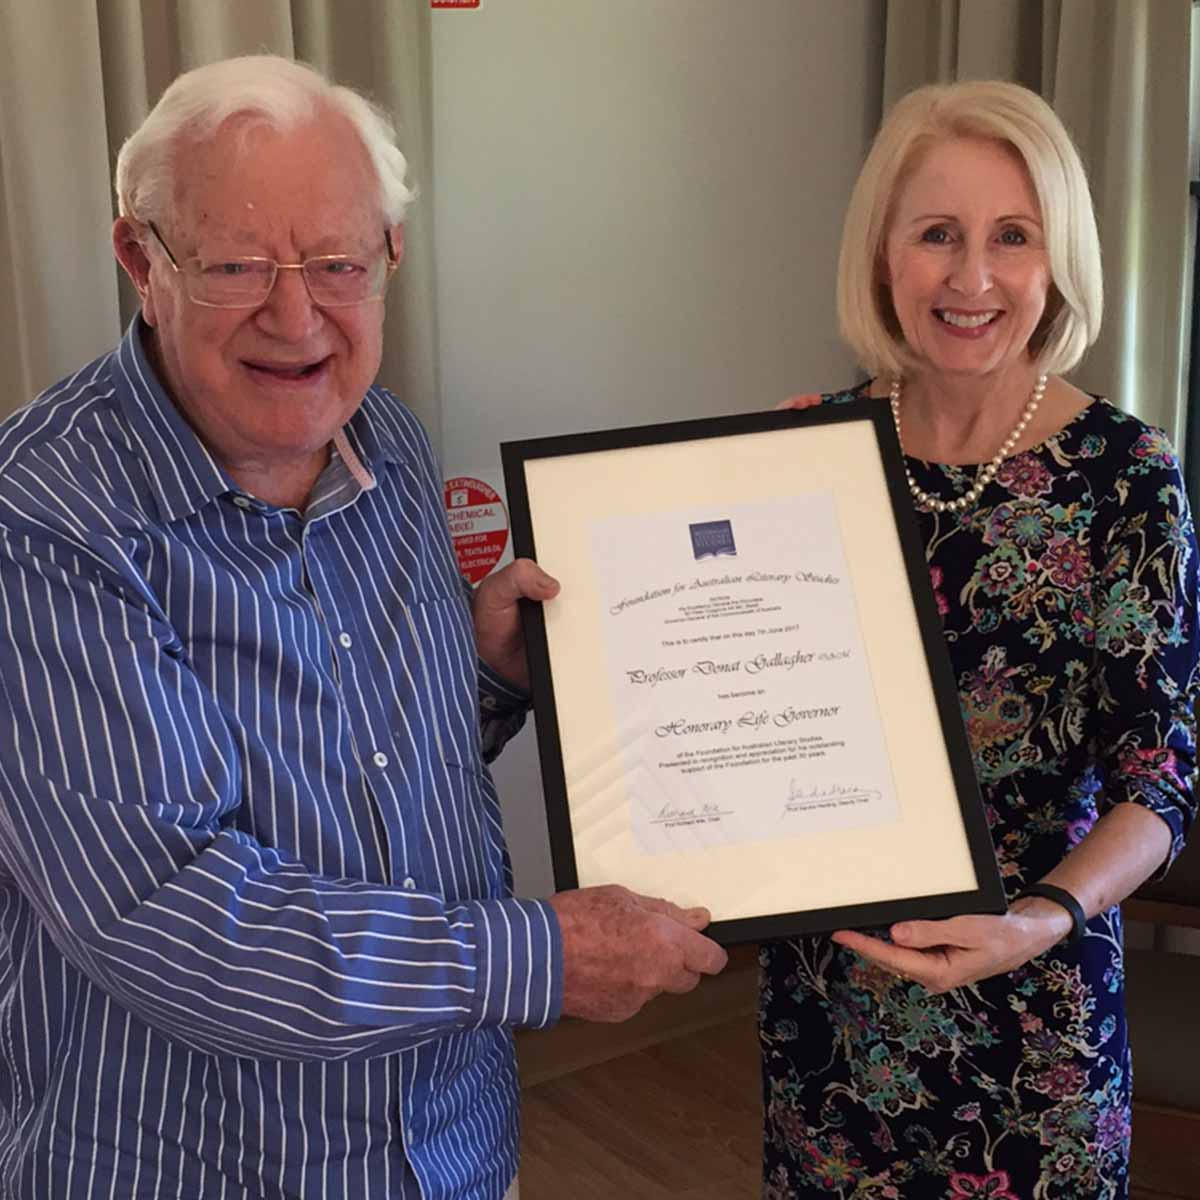 Prof Don Gallagher receiving Life Governors certificate with Prof Sandra Harding